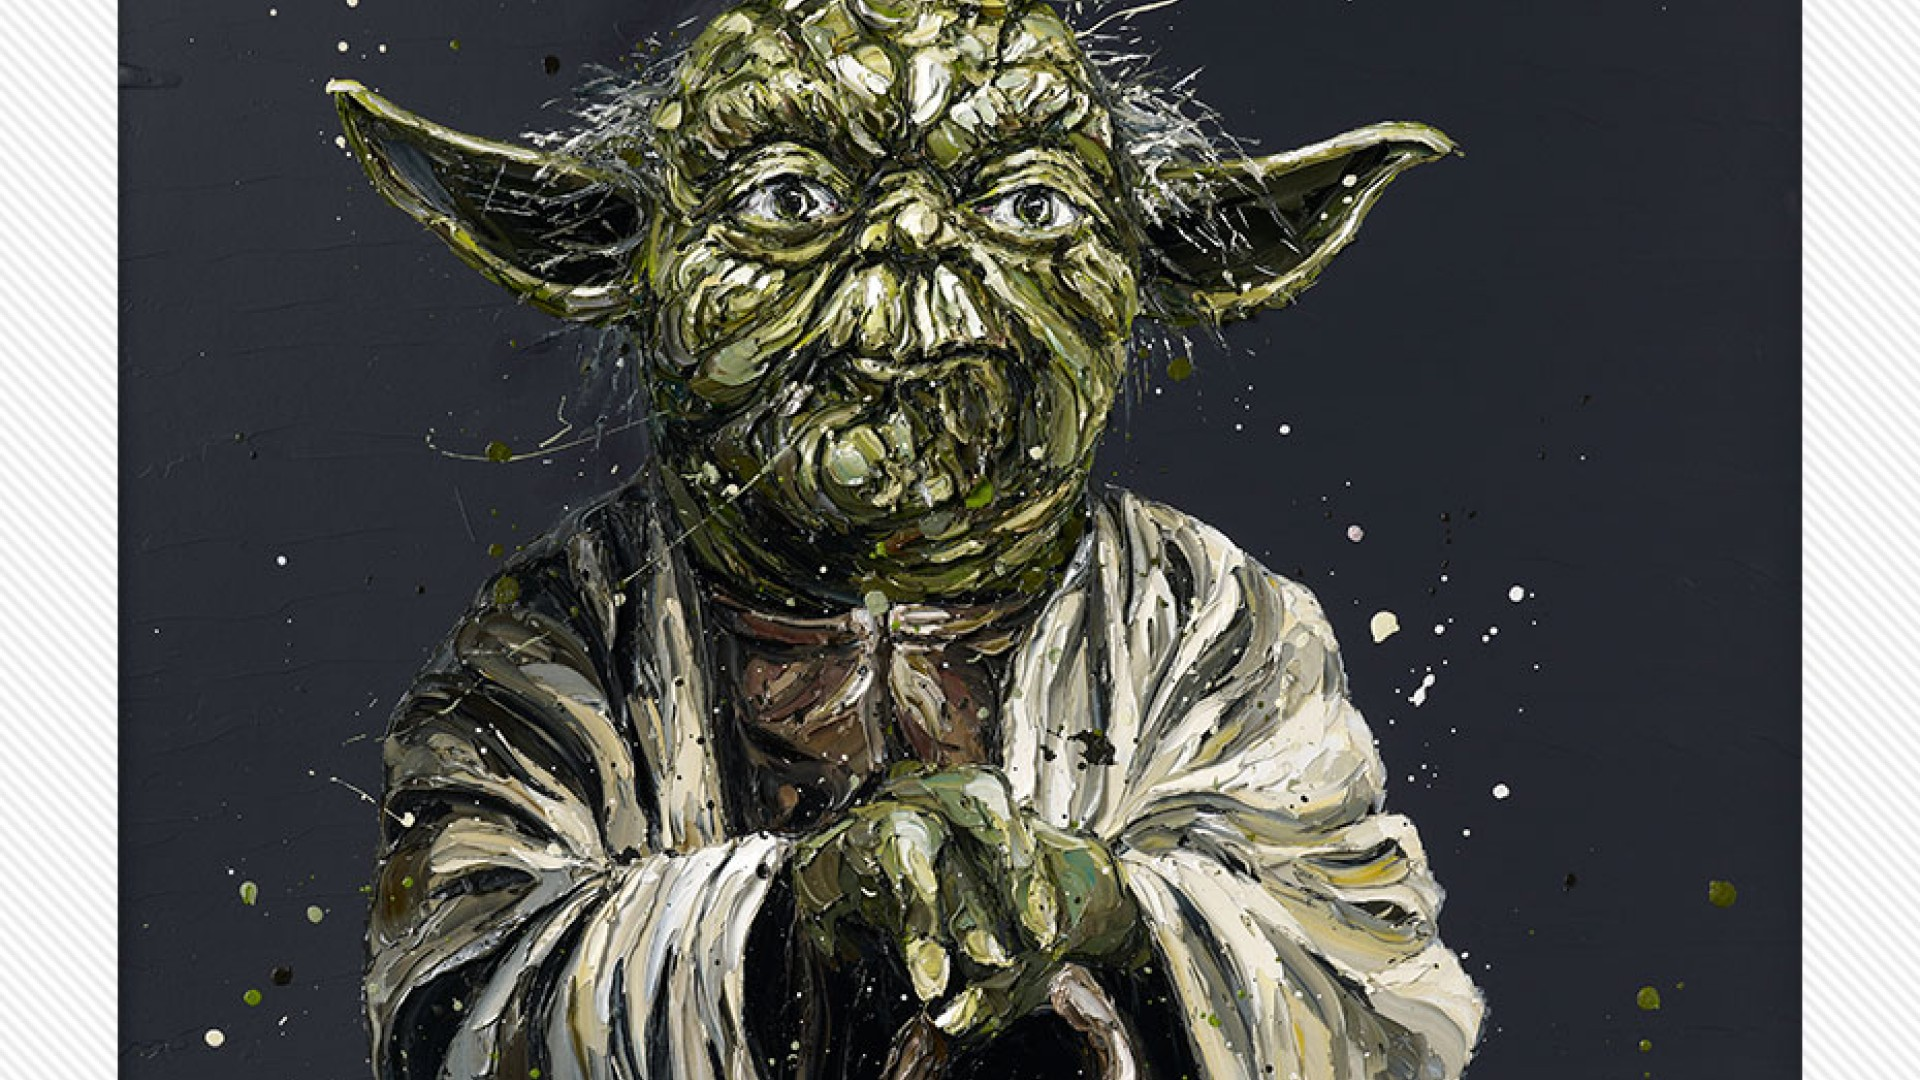 Yoda Face detail by Paul Oz